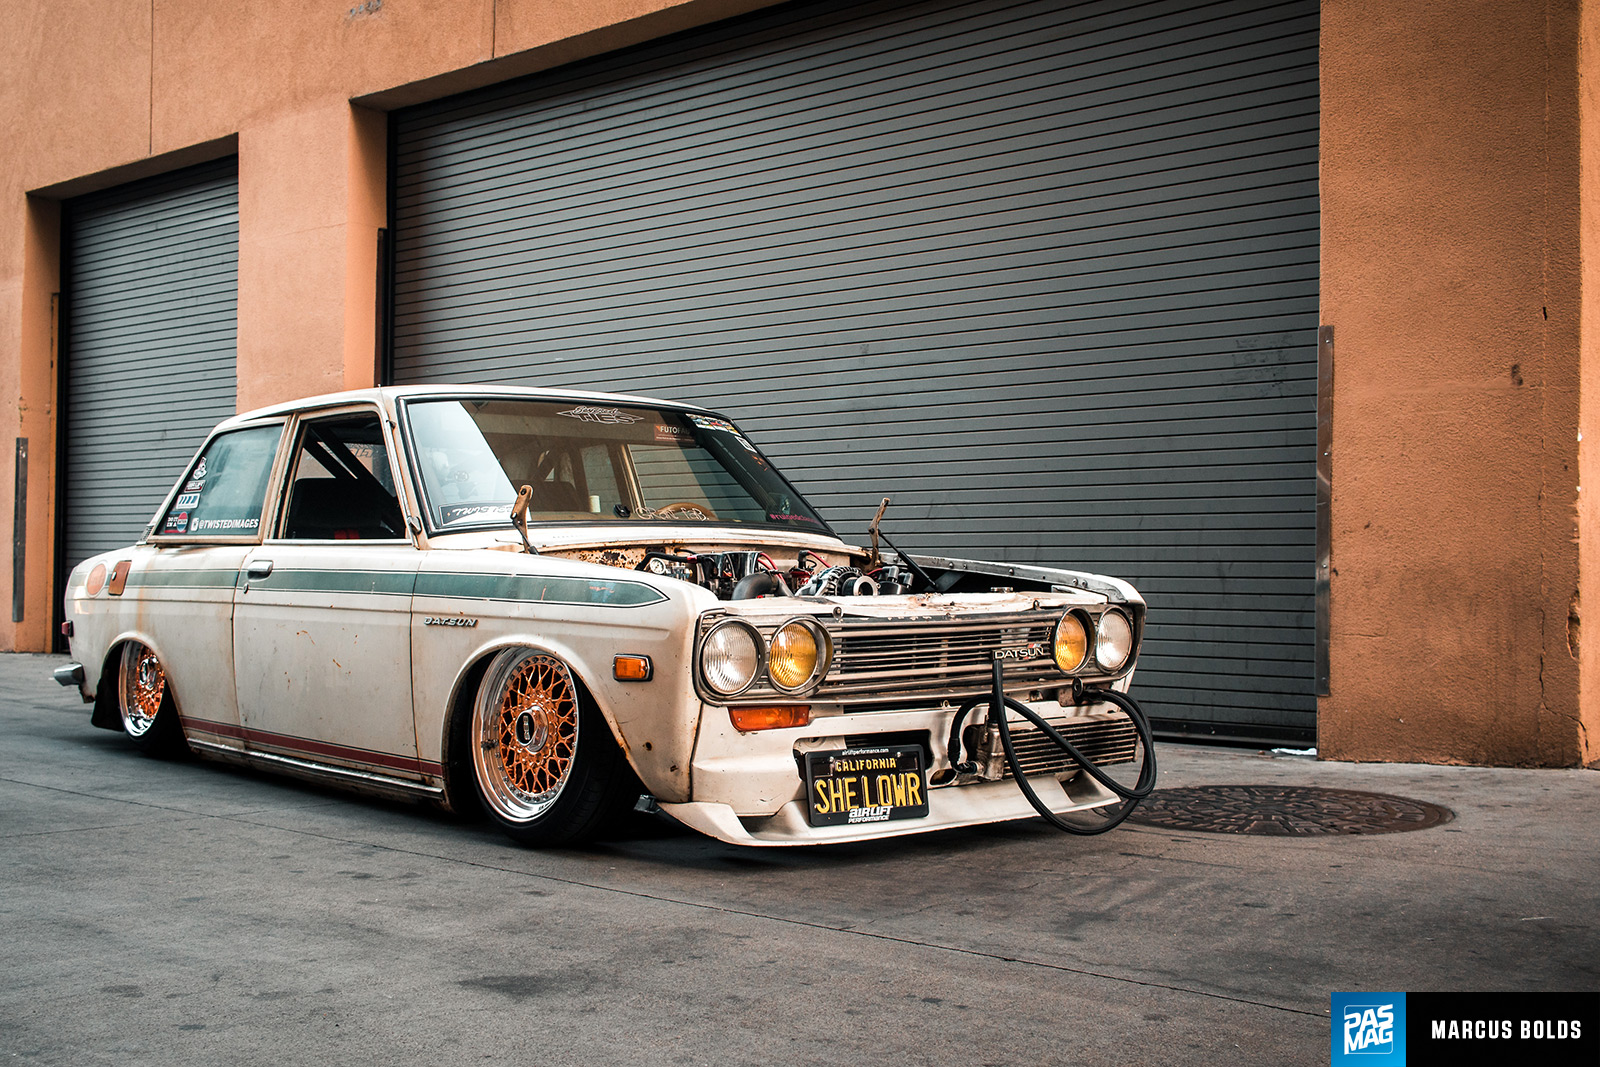 Twisted Fantasy: A Custom Datsun 510 With A Twist - PASMAG ...